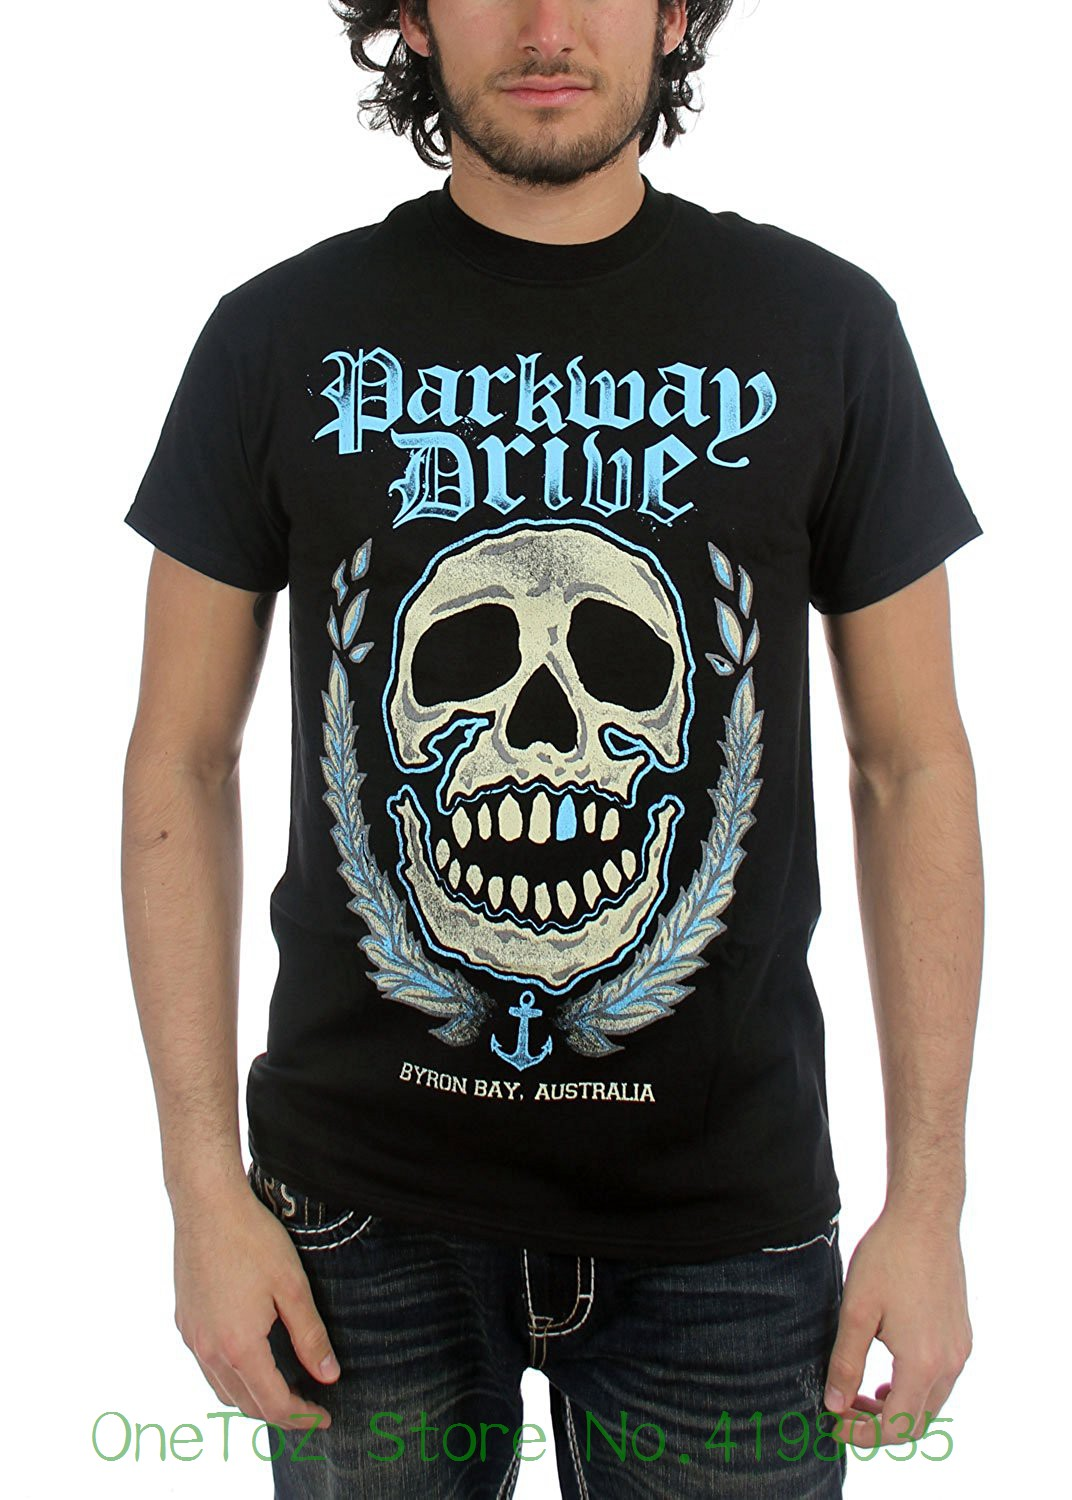 Authentic Byron Bay Skull Logo T-shirt S M L Xl Metalcore New Mens O-neck Printed Tee Shirt